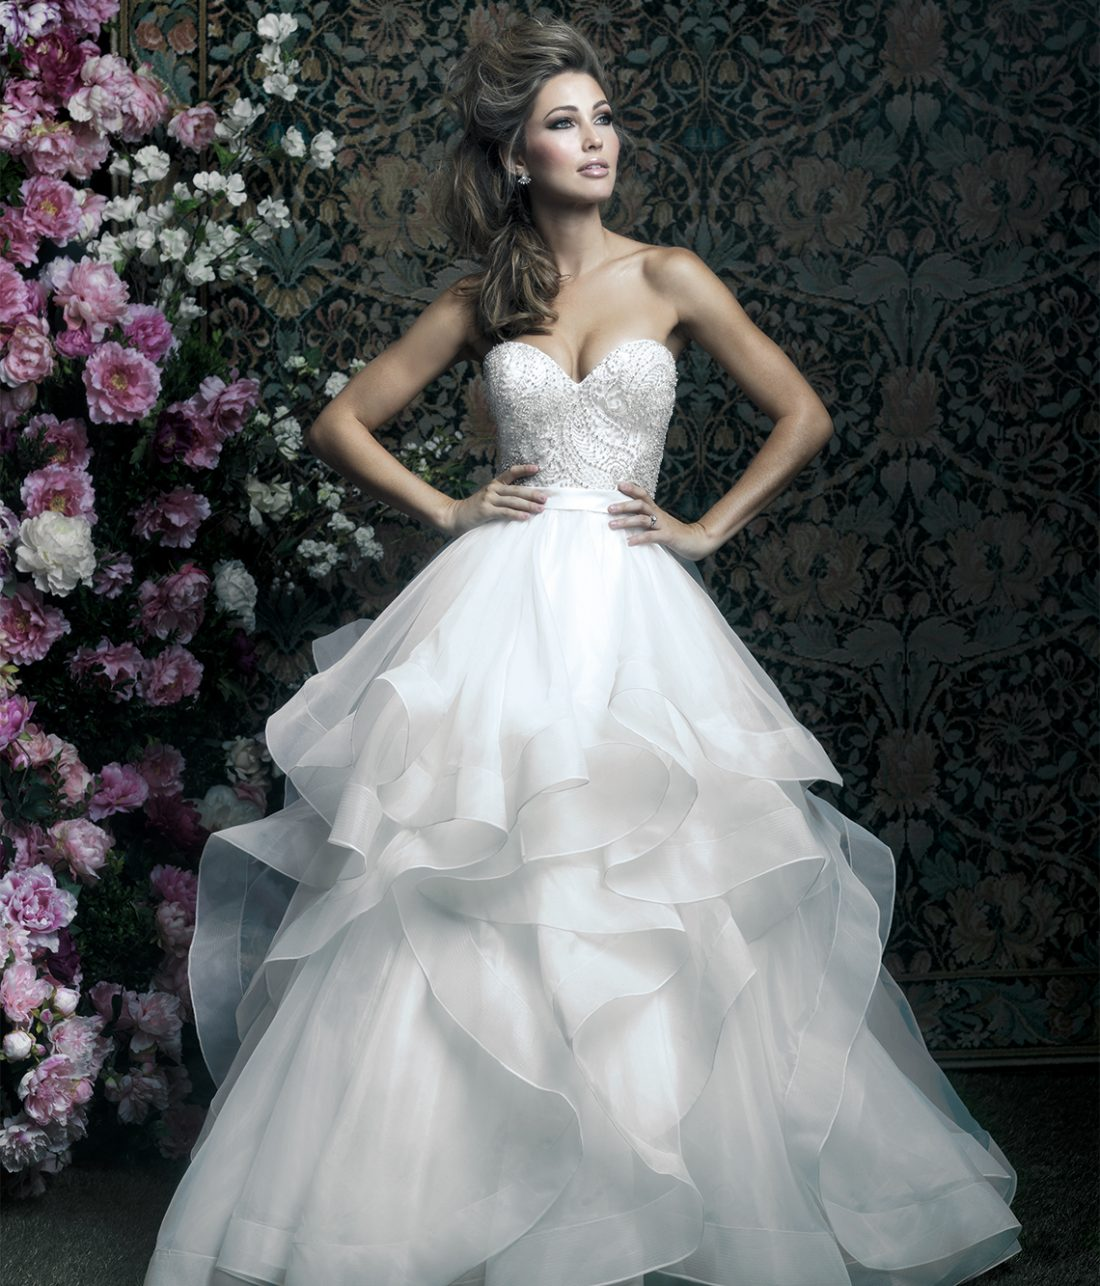 Allure Couture Style C417   Sweeping ruffles add volume and texture to this anything-but-ordinary strapless ball gown. $1,685, Claire's Fashions, Wilmington, Del., www.clairesfashions.net